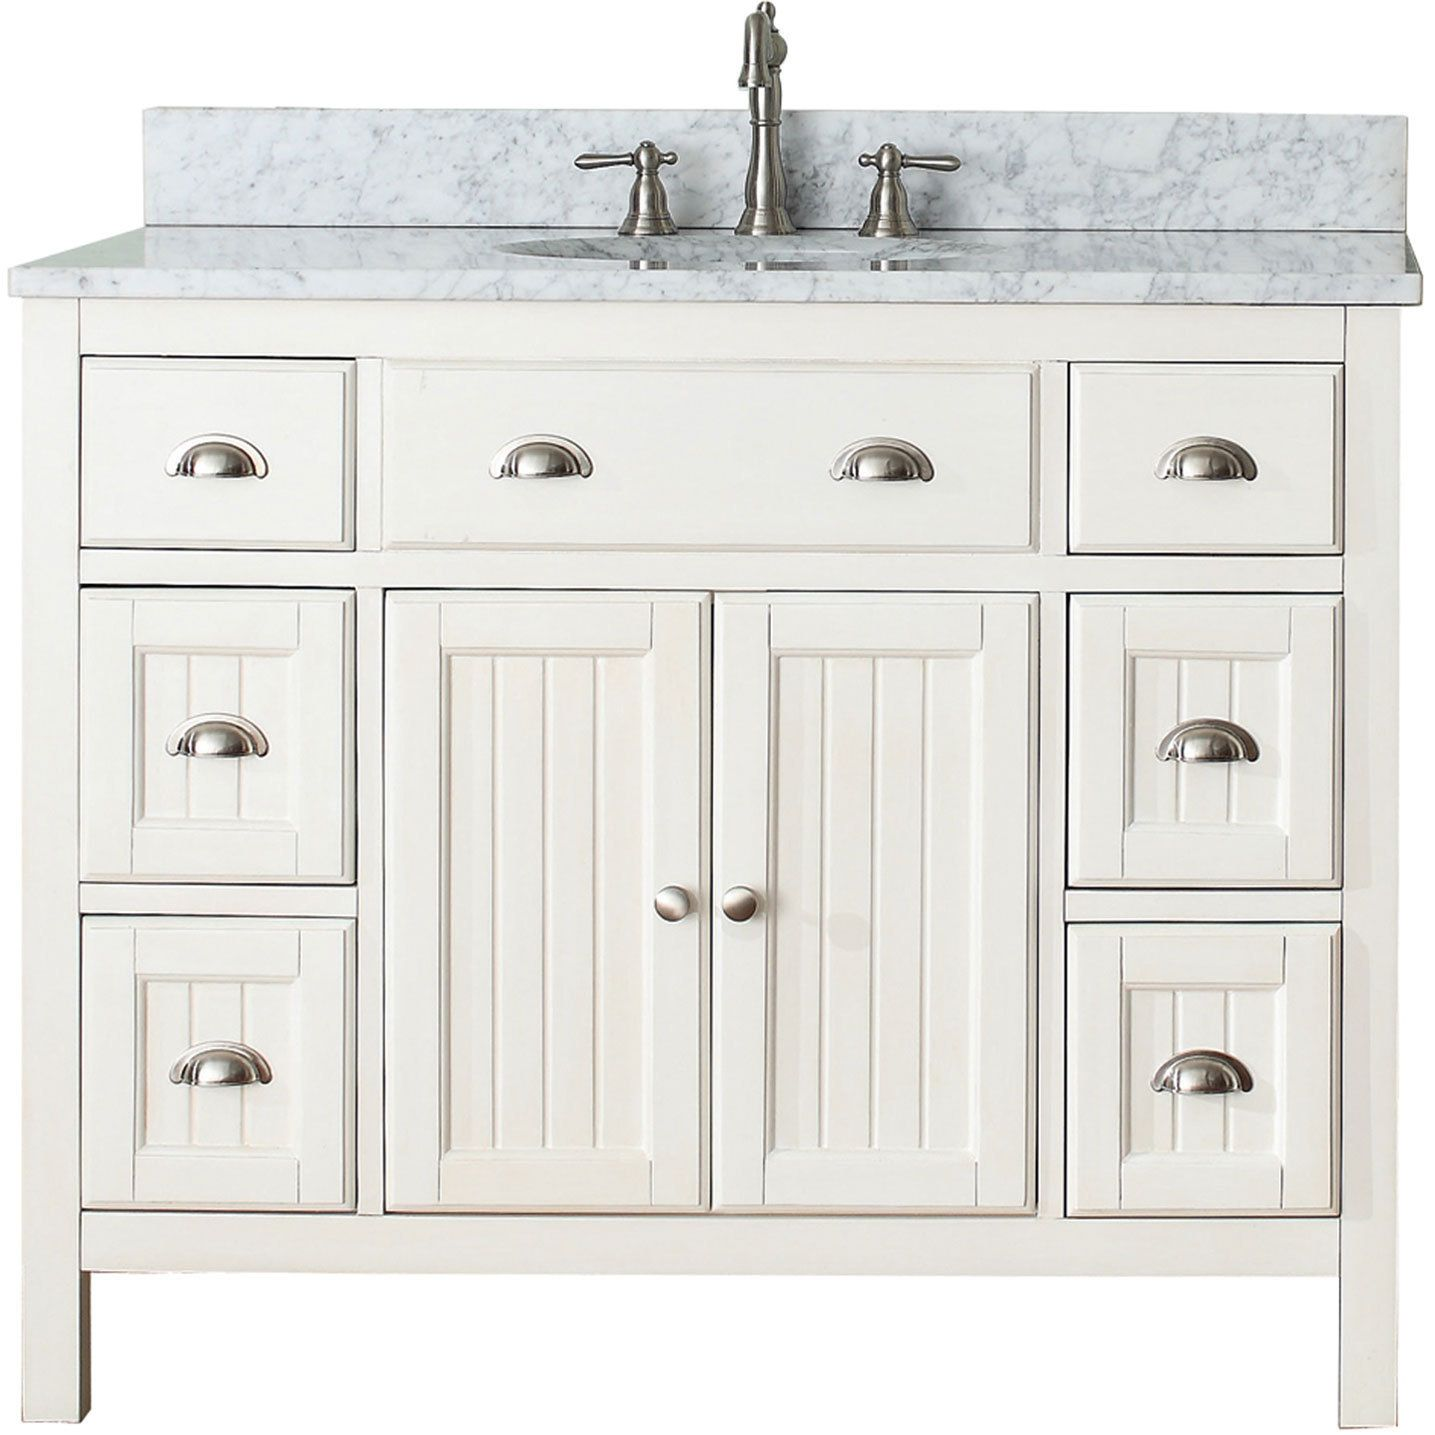 with including various astounding wood rug grey double using black tops set decoration area bathroom and furry vanity white combo marble